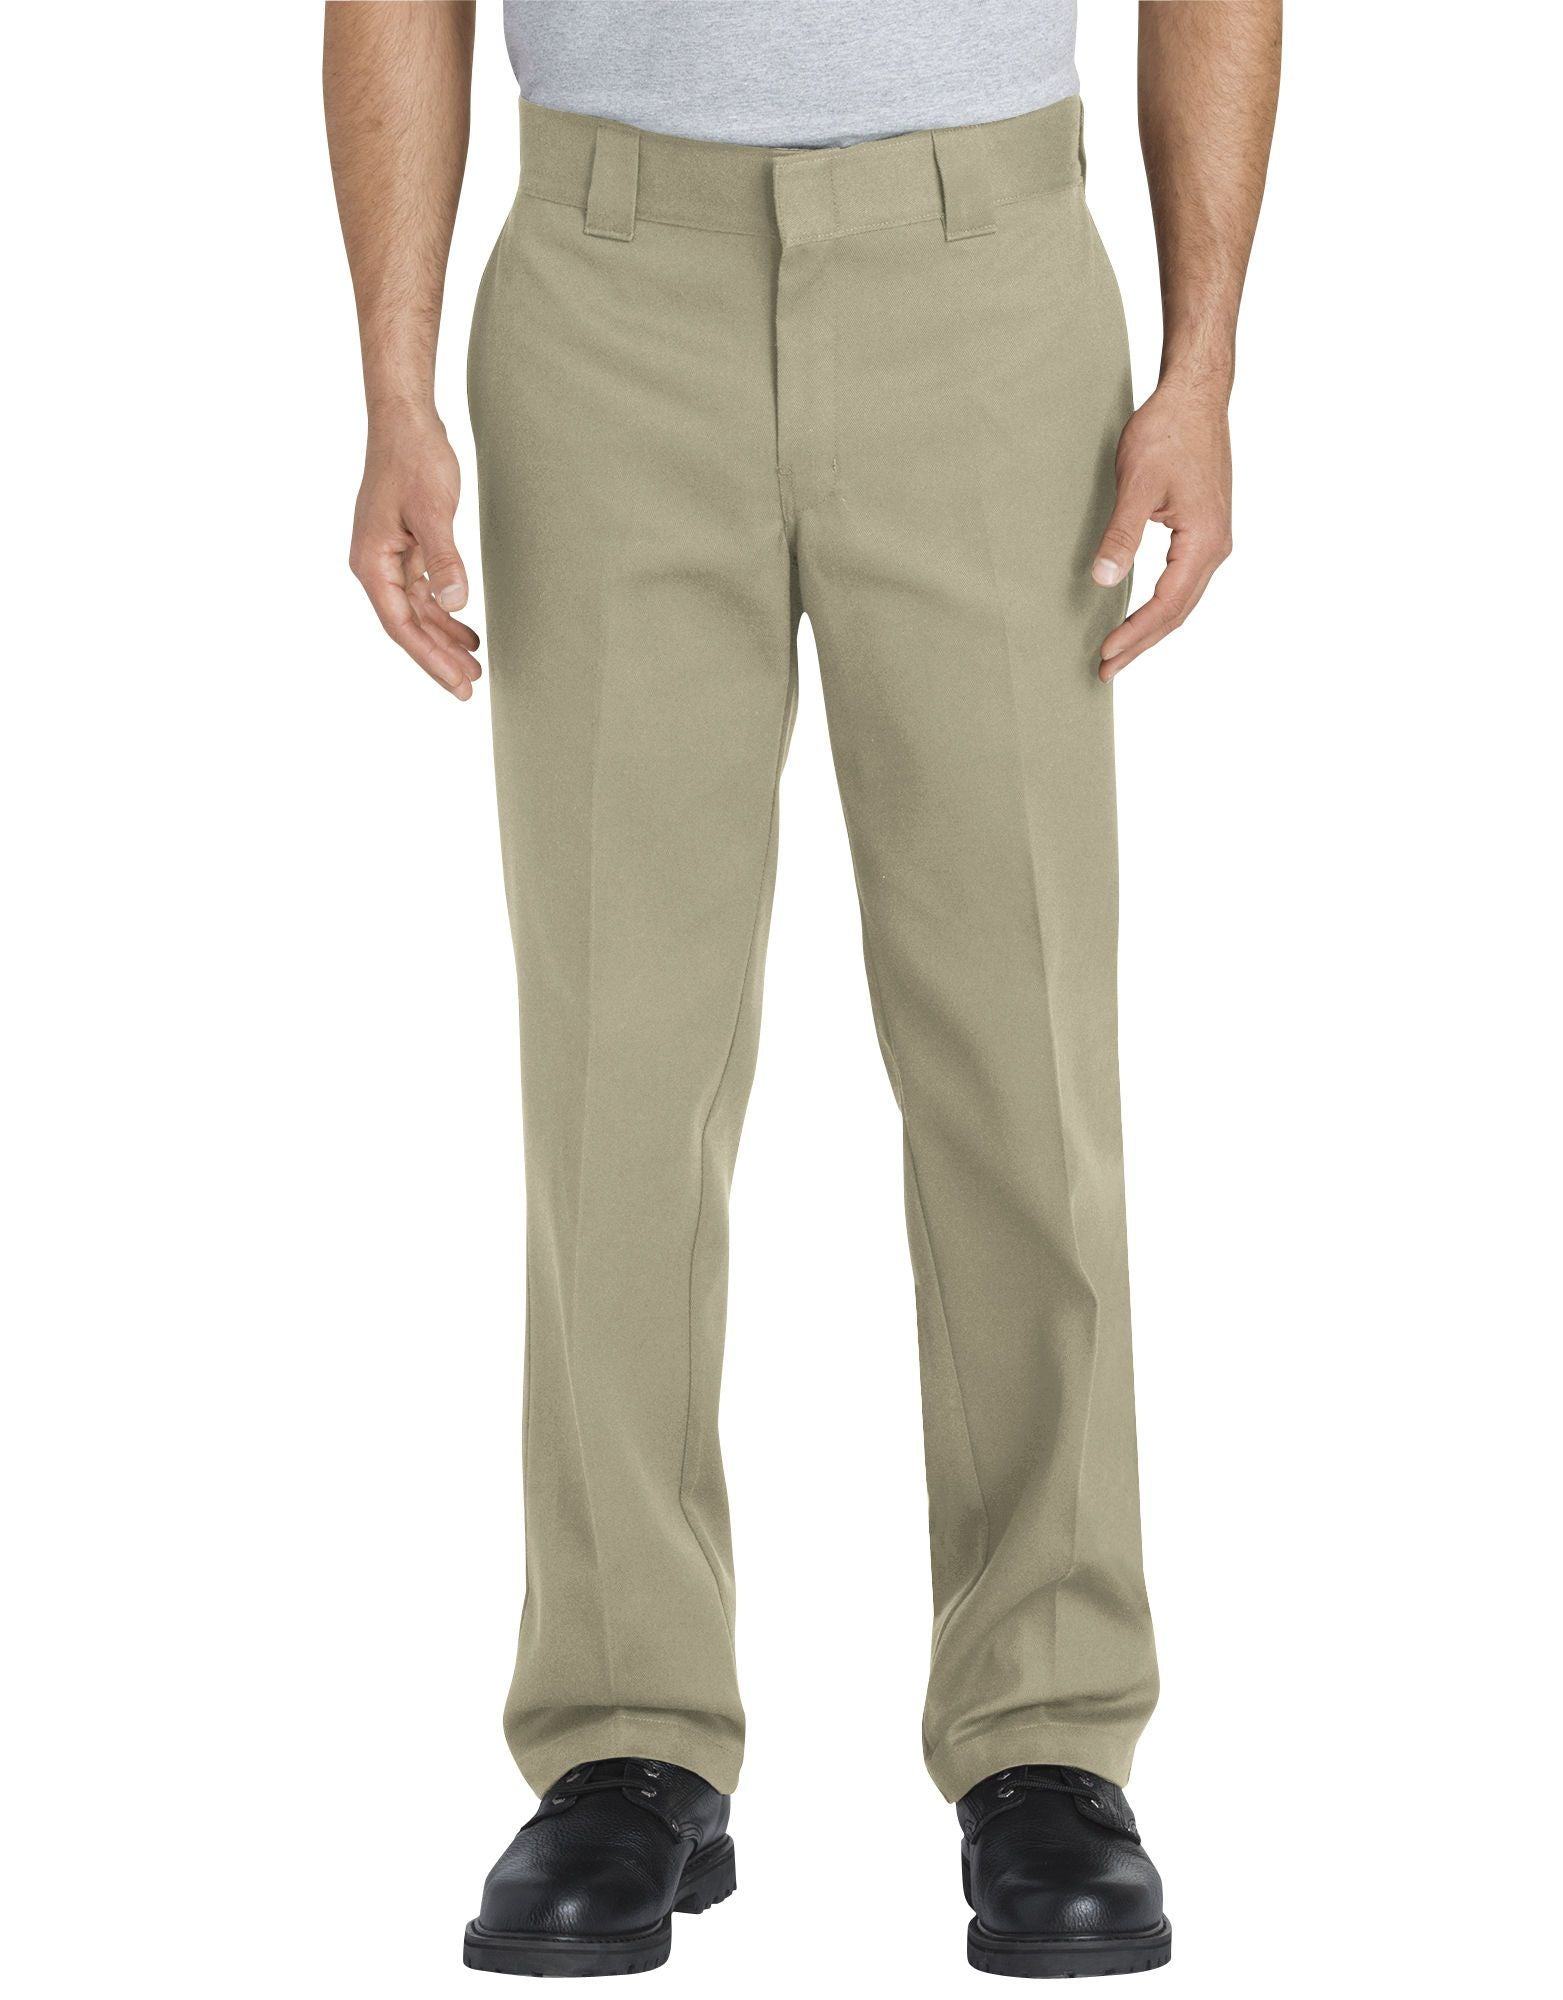 DICKIES MEN FLEX Slim Fit Straight Leg Work Pants 873FLEX-DESERT SAND 873FLEX-DESERT SAND - KMOMO